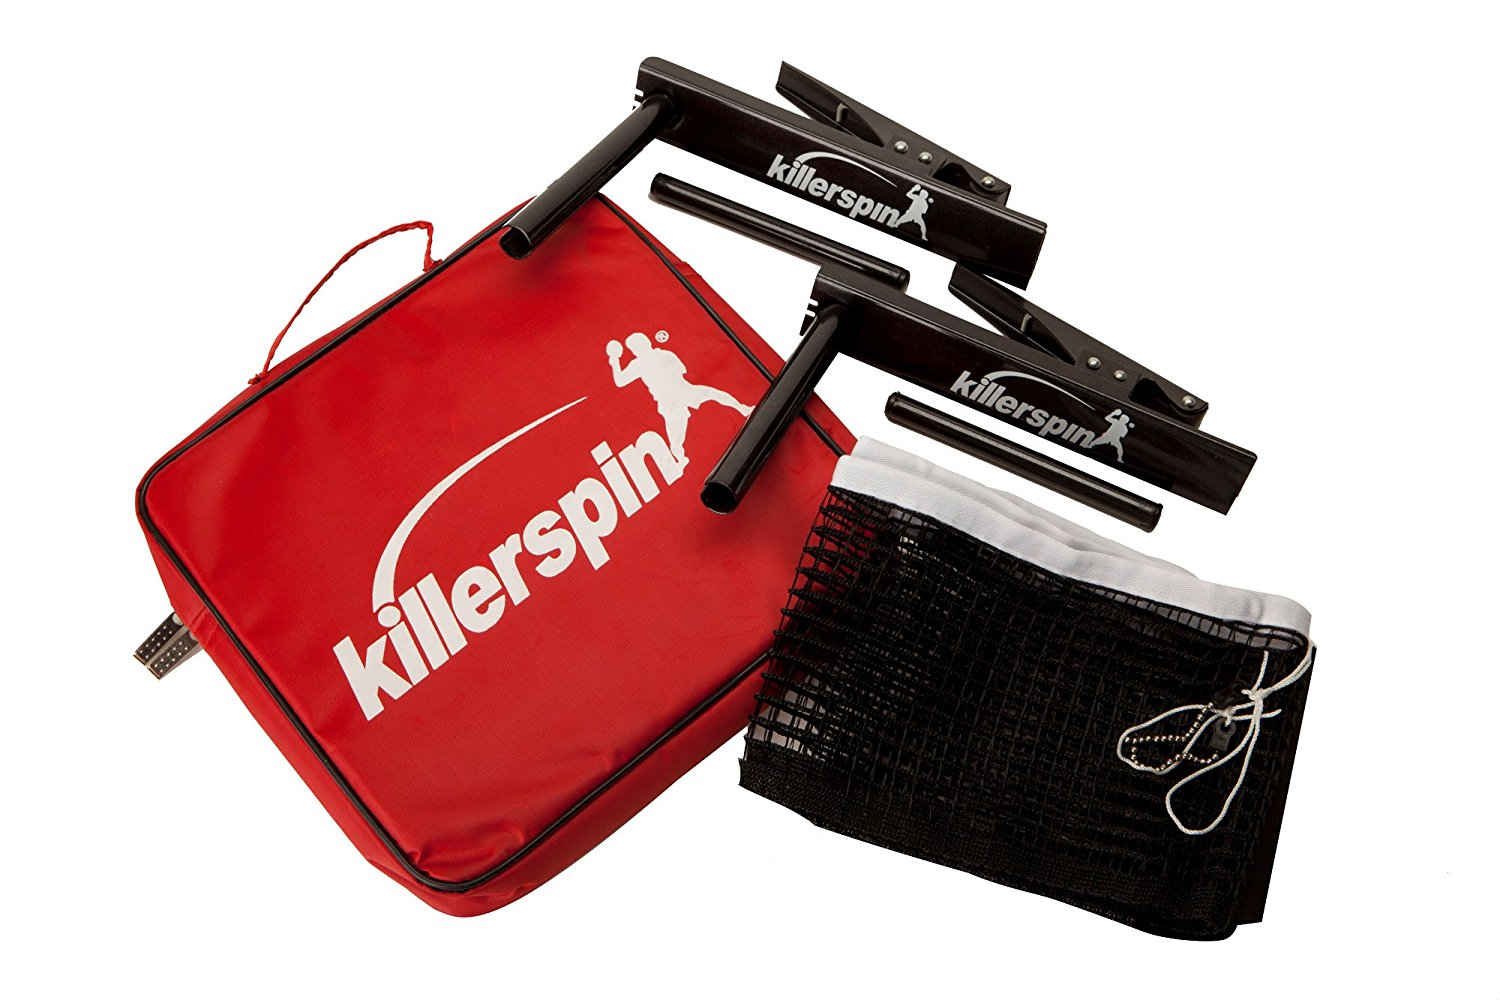 Killerspin Table Tennis Clip-On Net & Post Set, Definitely The Easiest Net & Post Set to Assemble Black, Fits Most Standard Table Tennis Tablesup to A Table Width of 1""